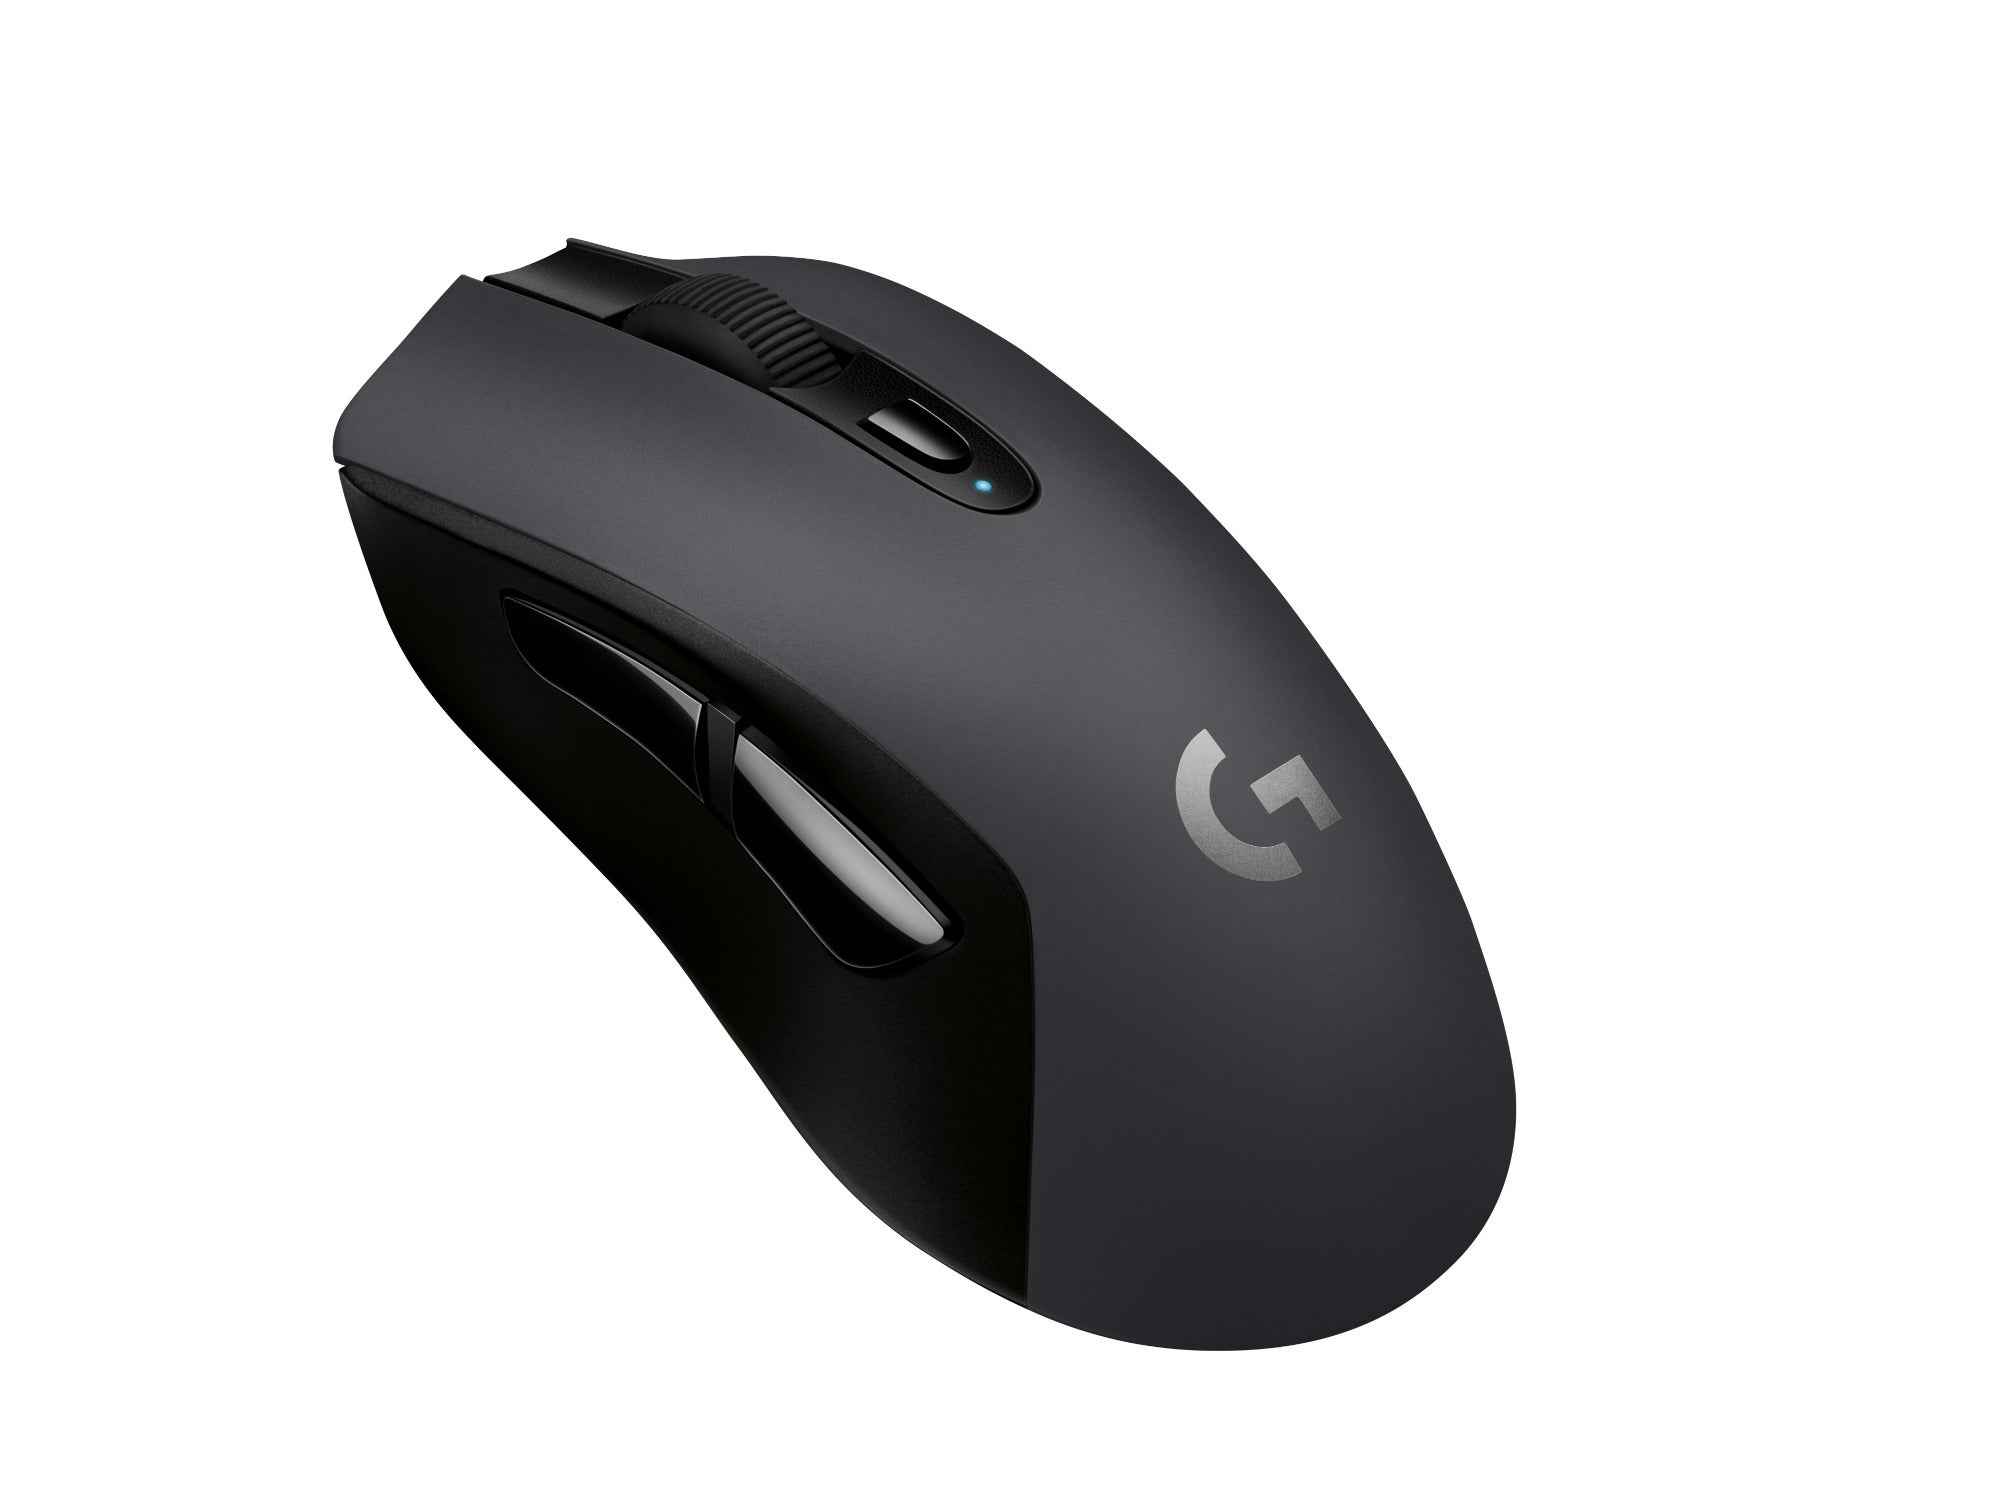 Logitech\'s G603 wireless mouse is powerful and long-lasting | PCWorld